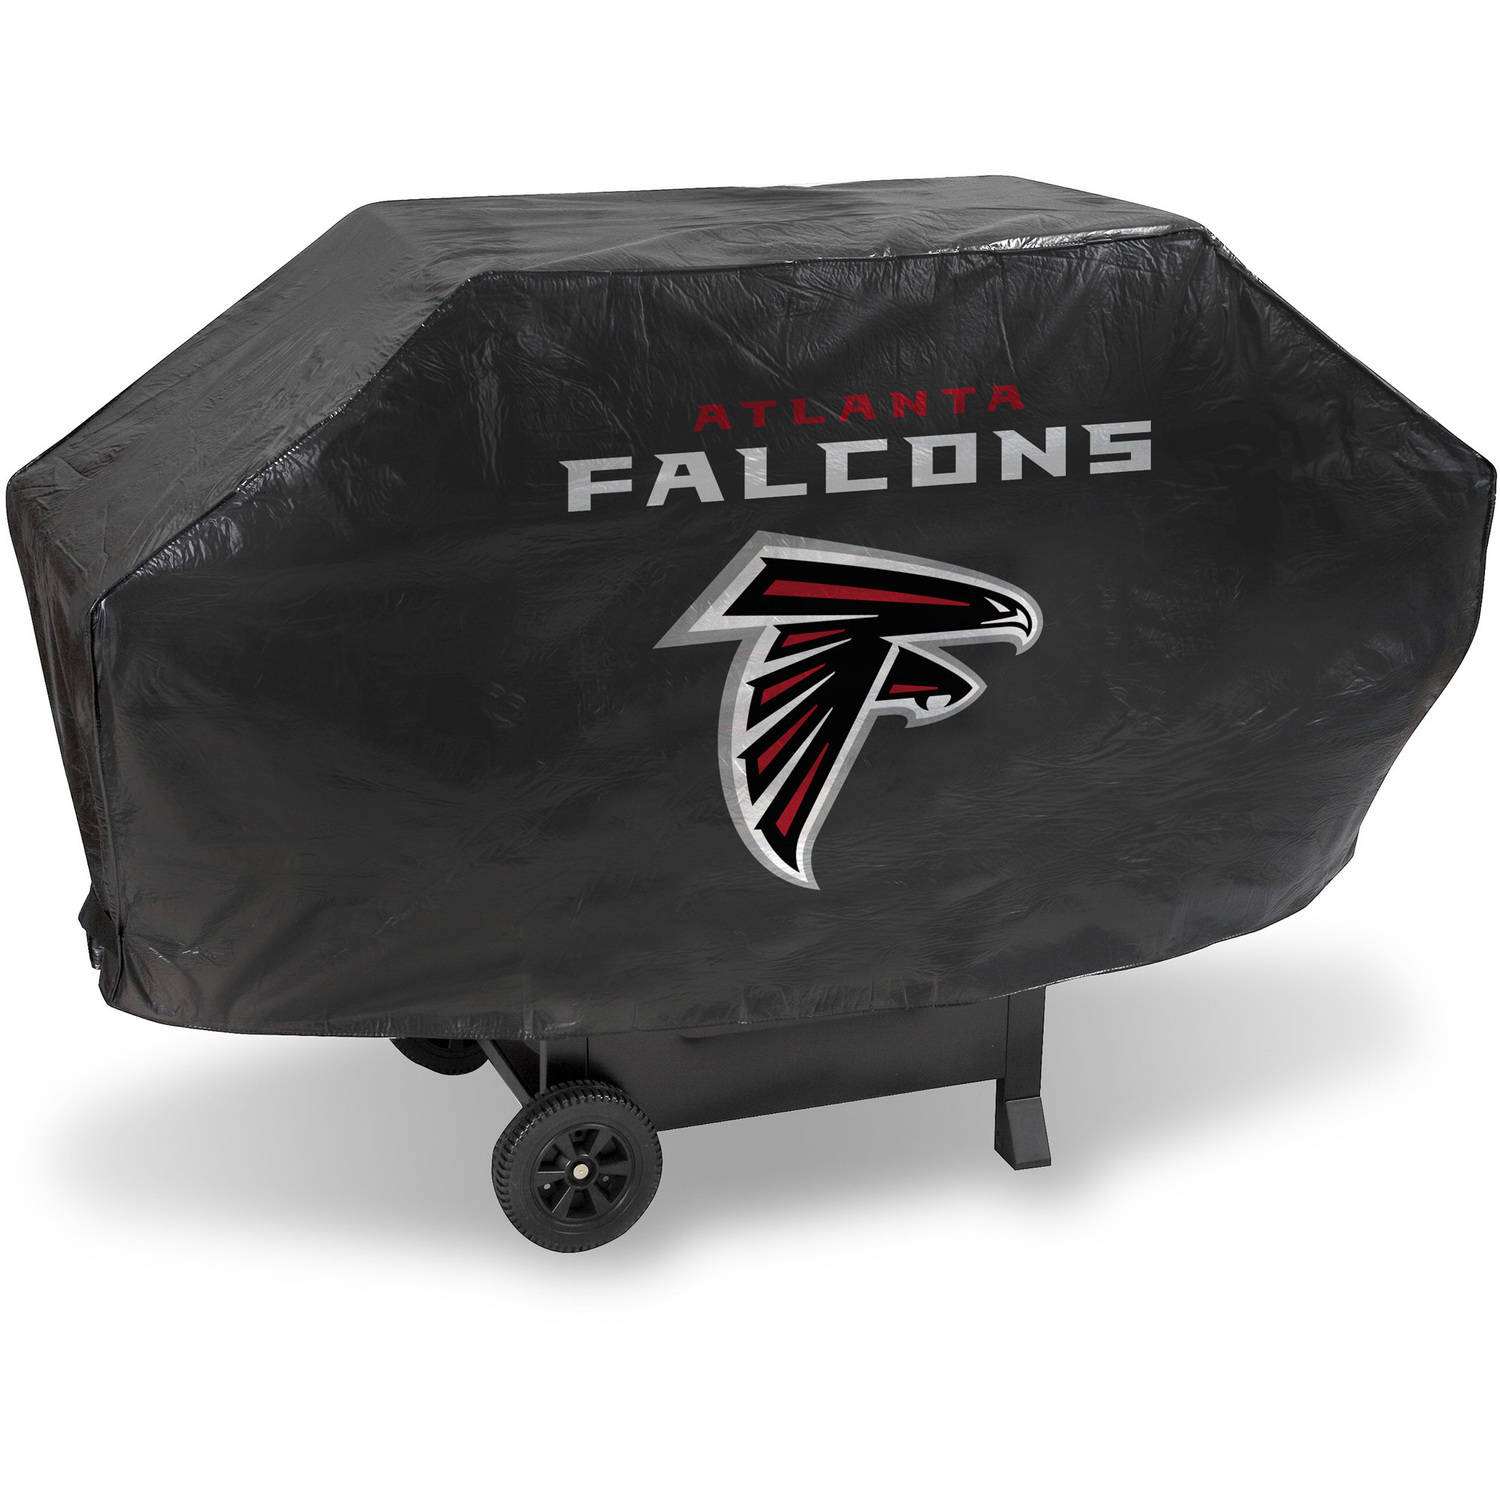 Atlanta Falcons Deluxe Grill Cover by Grill Covers